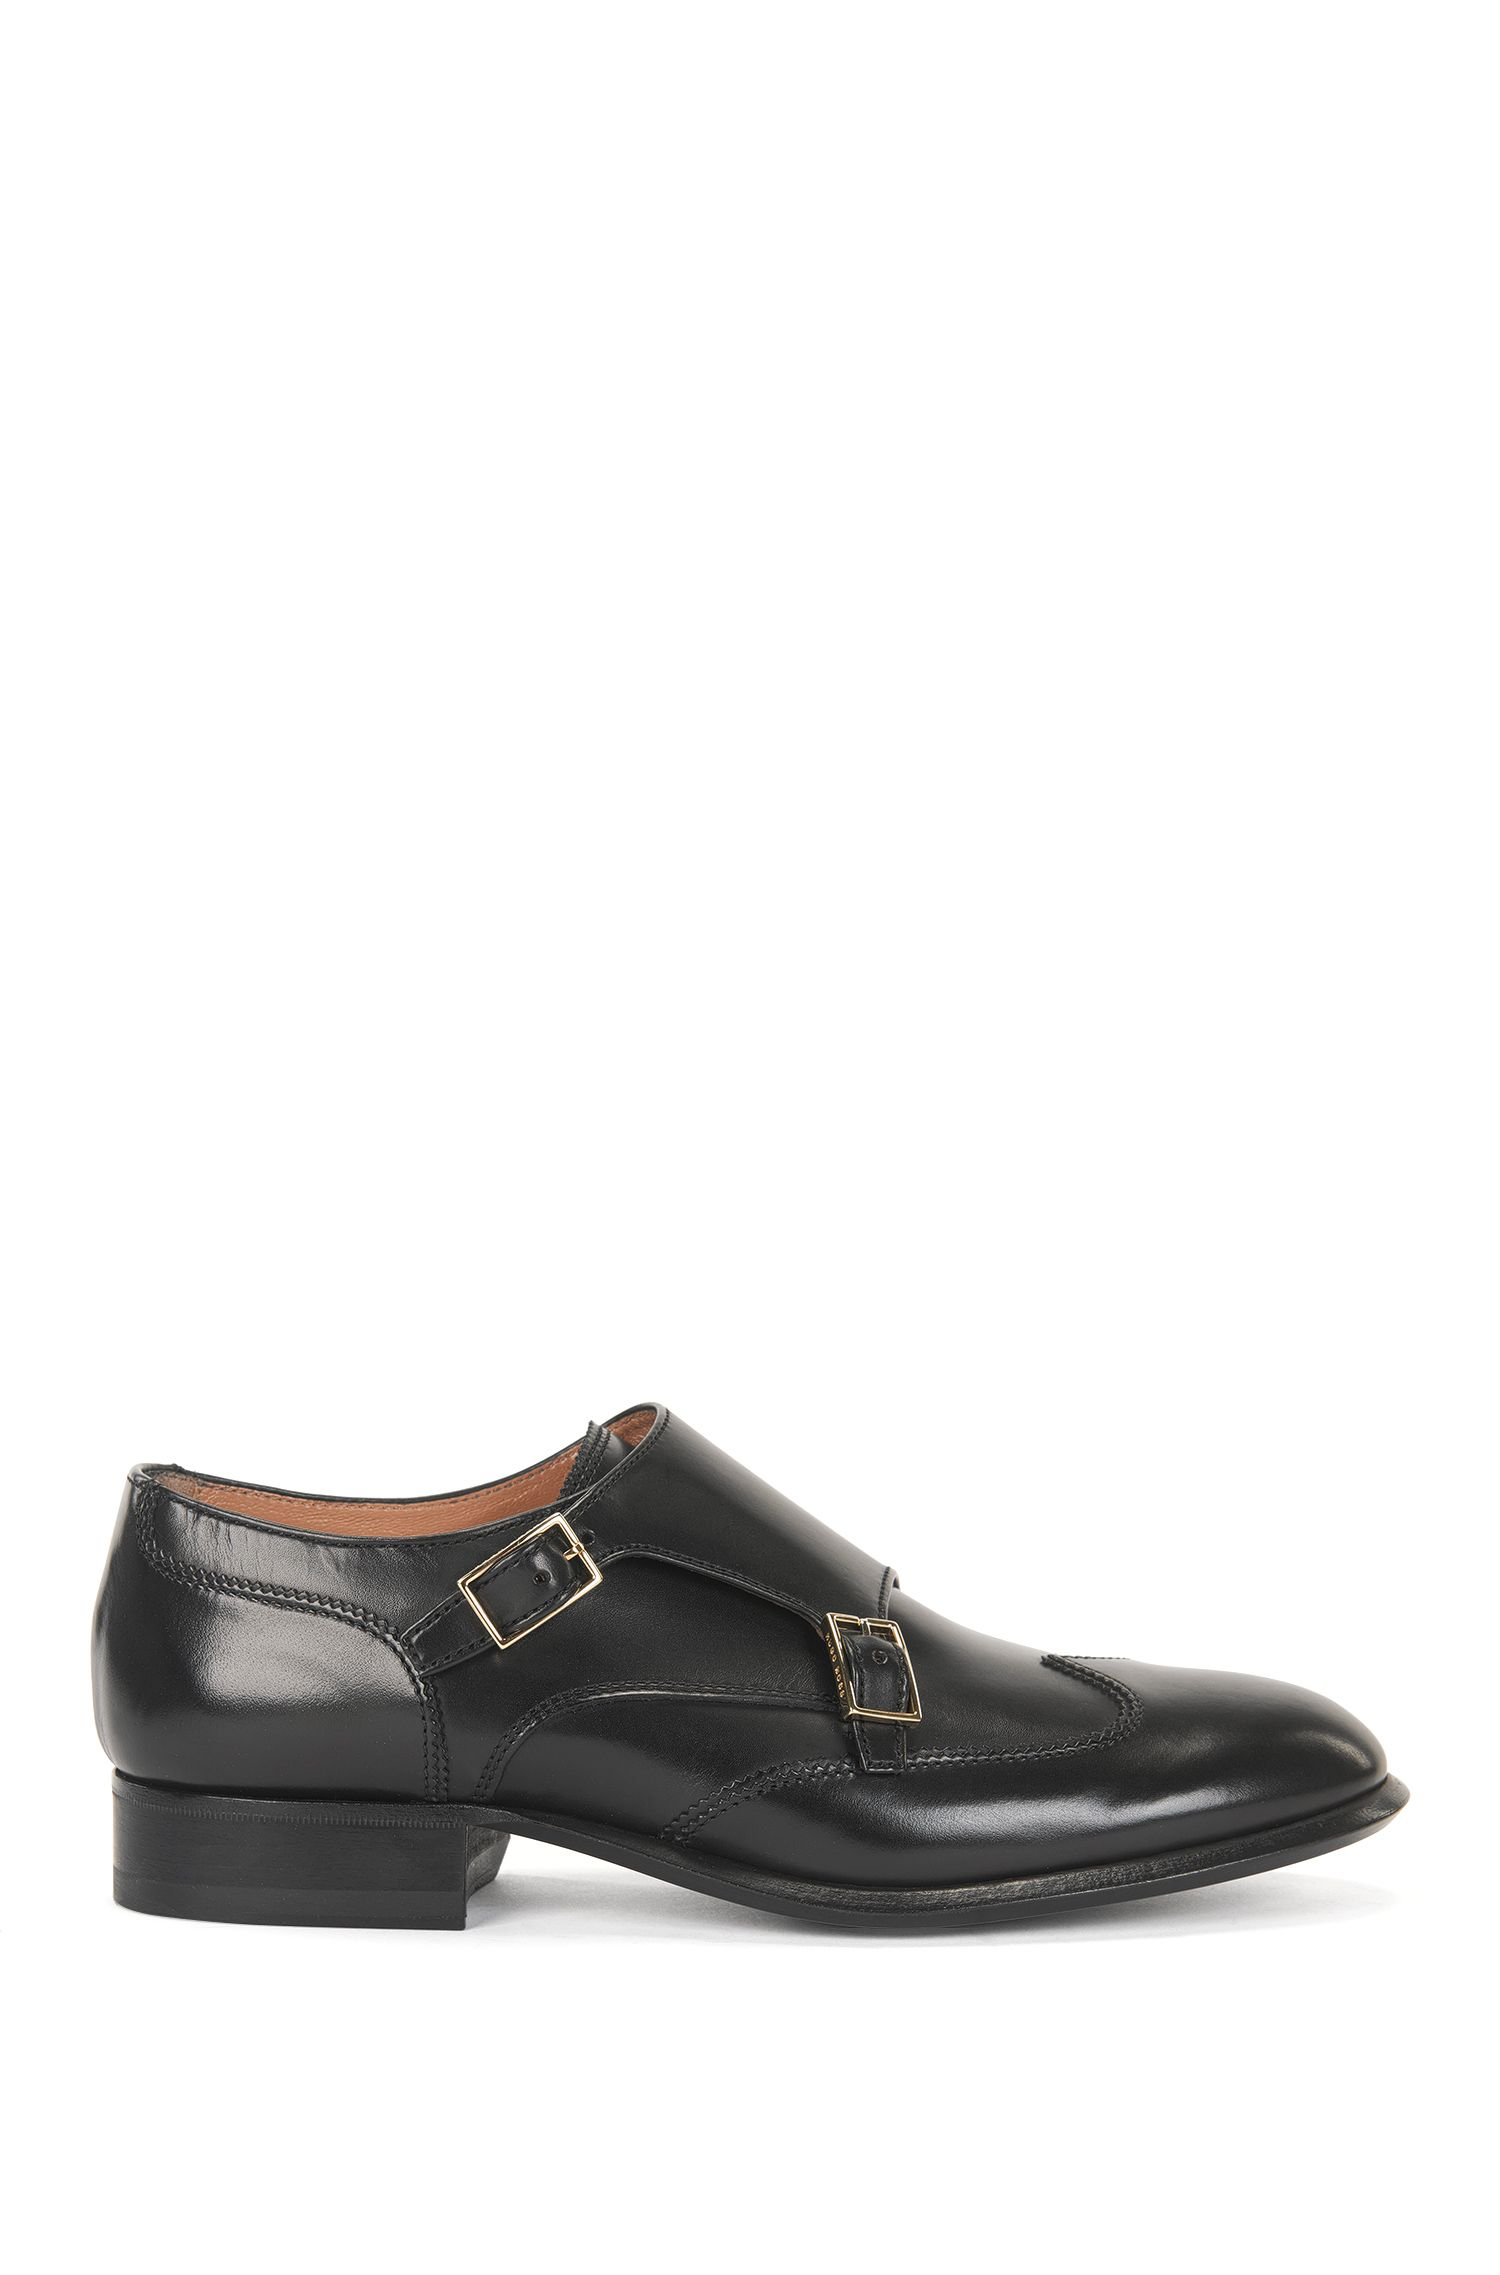 Double monk shoes in Italian leather